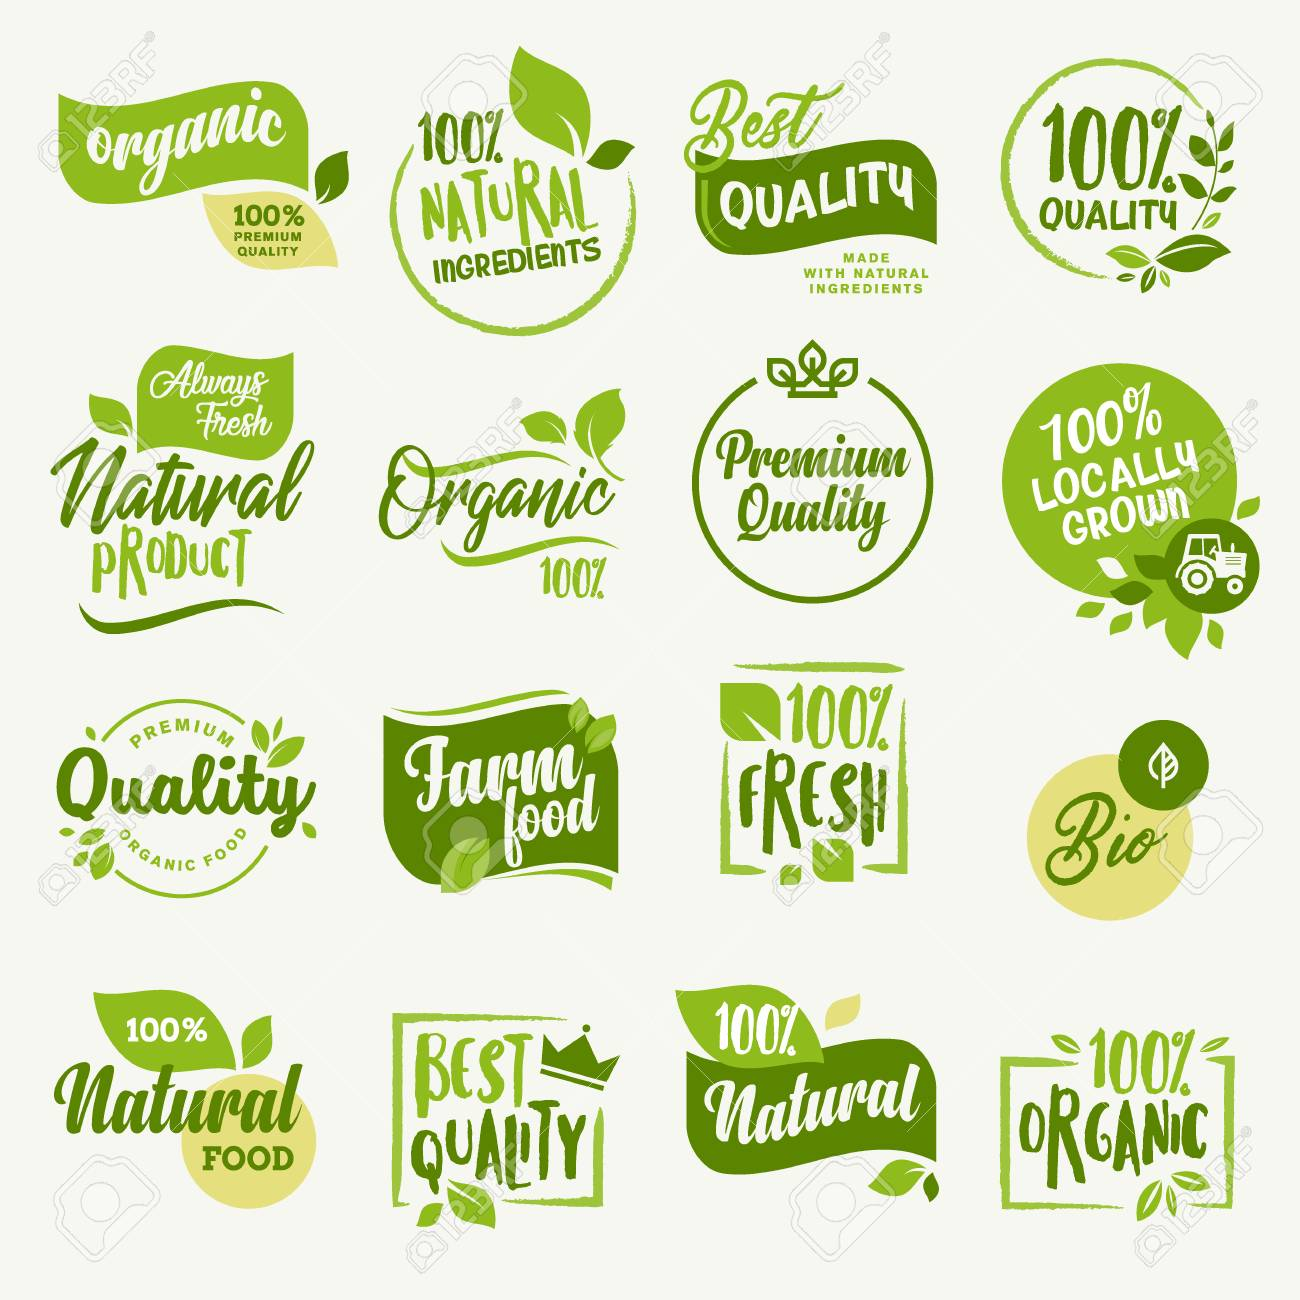 Organic food farm fresh and natural product stickers and badges